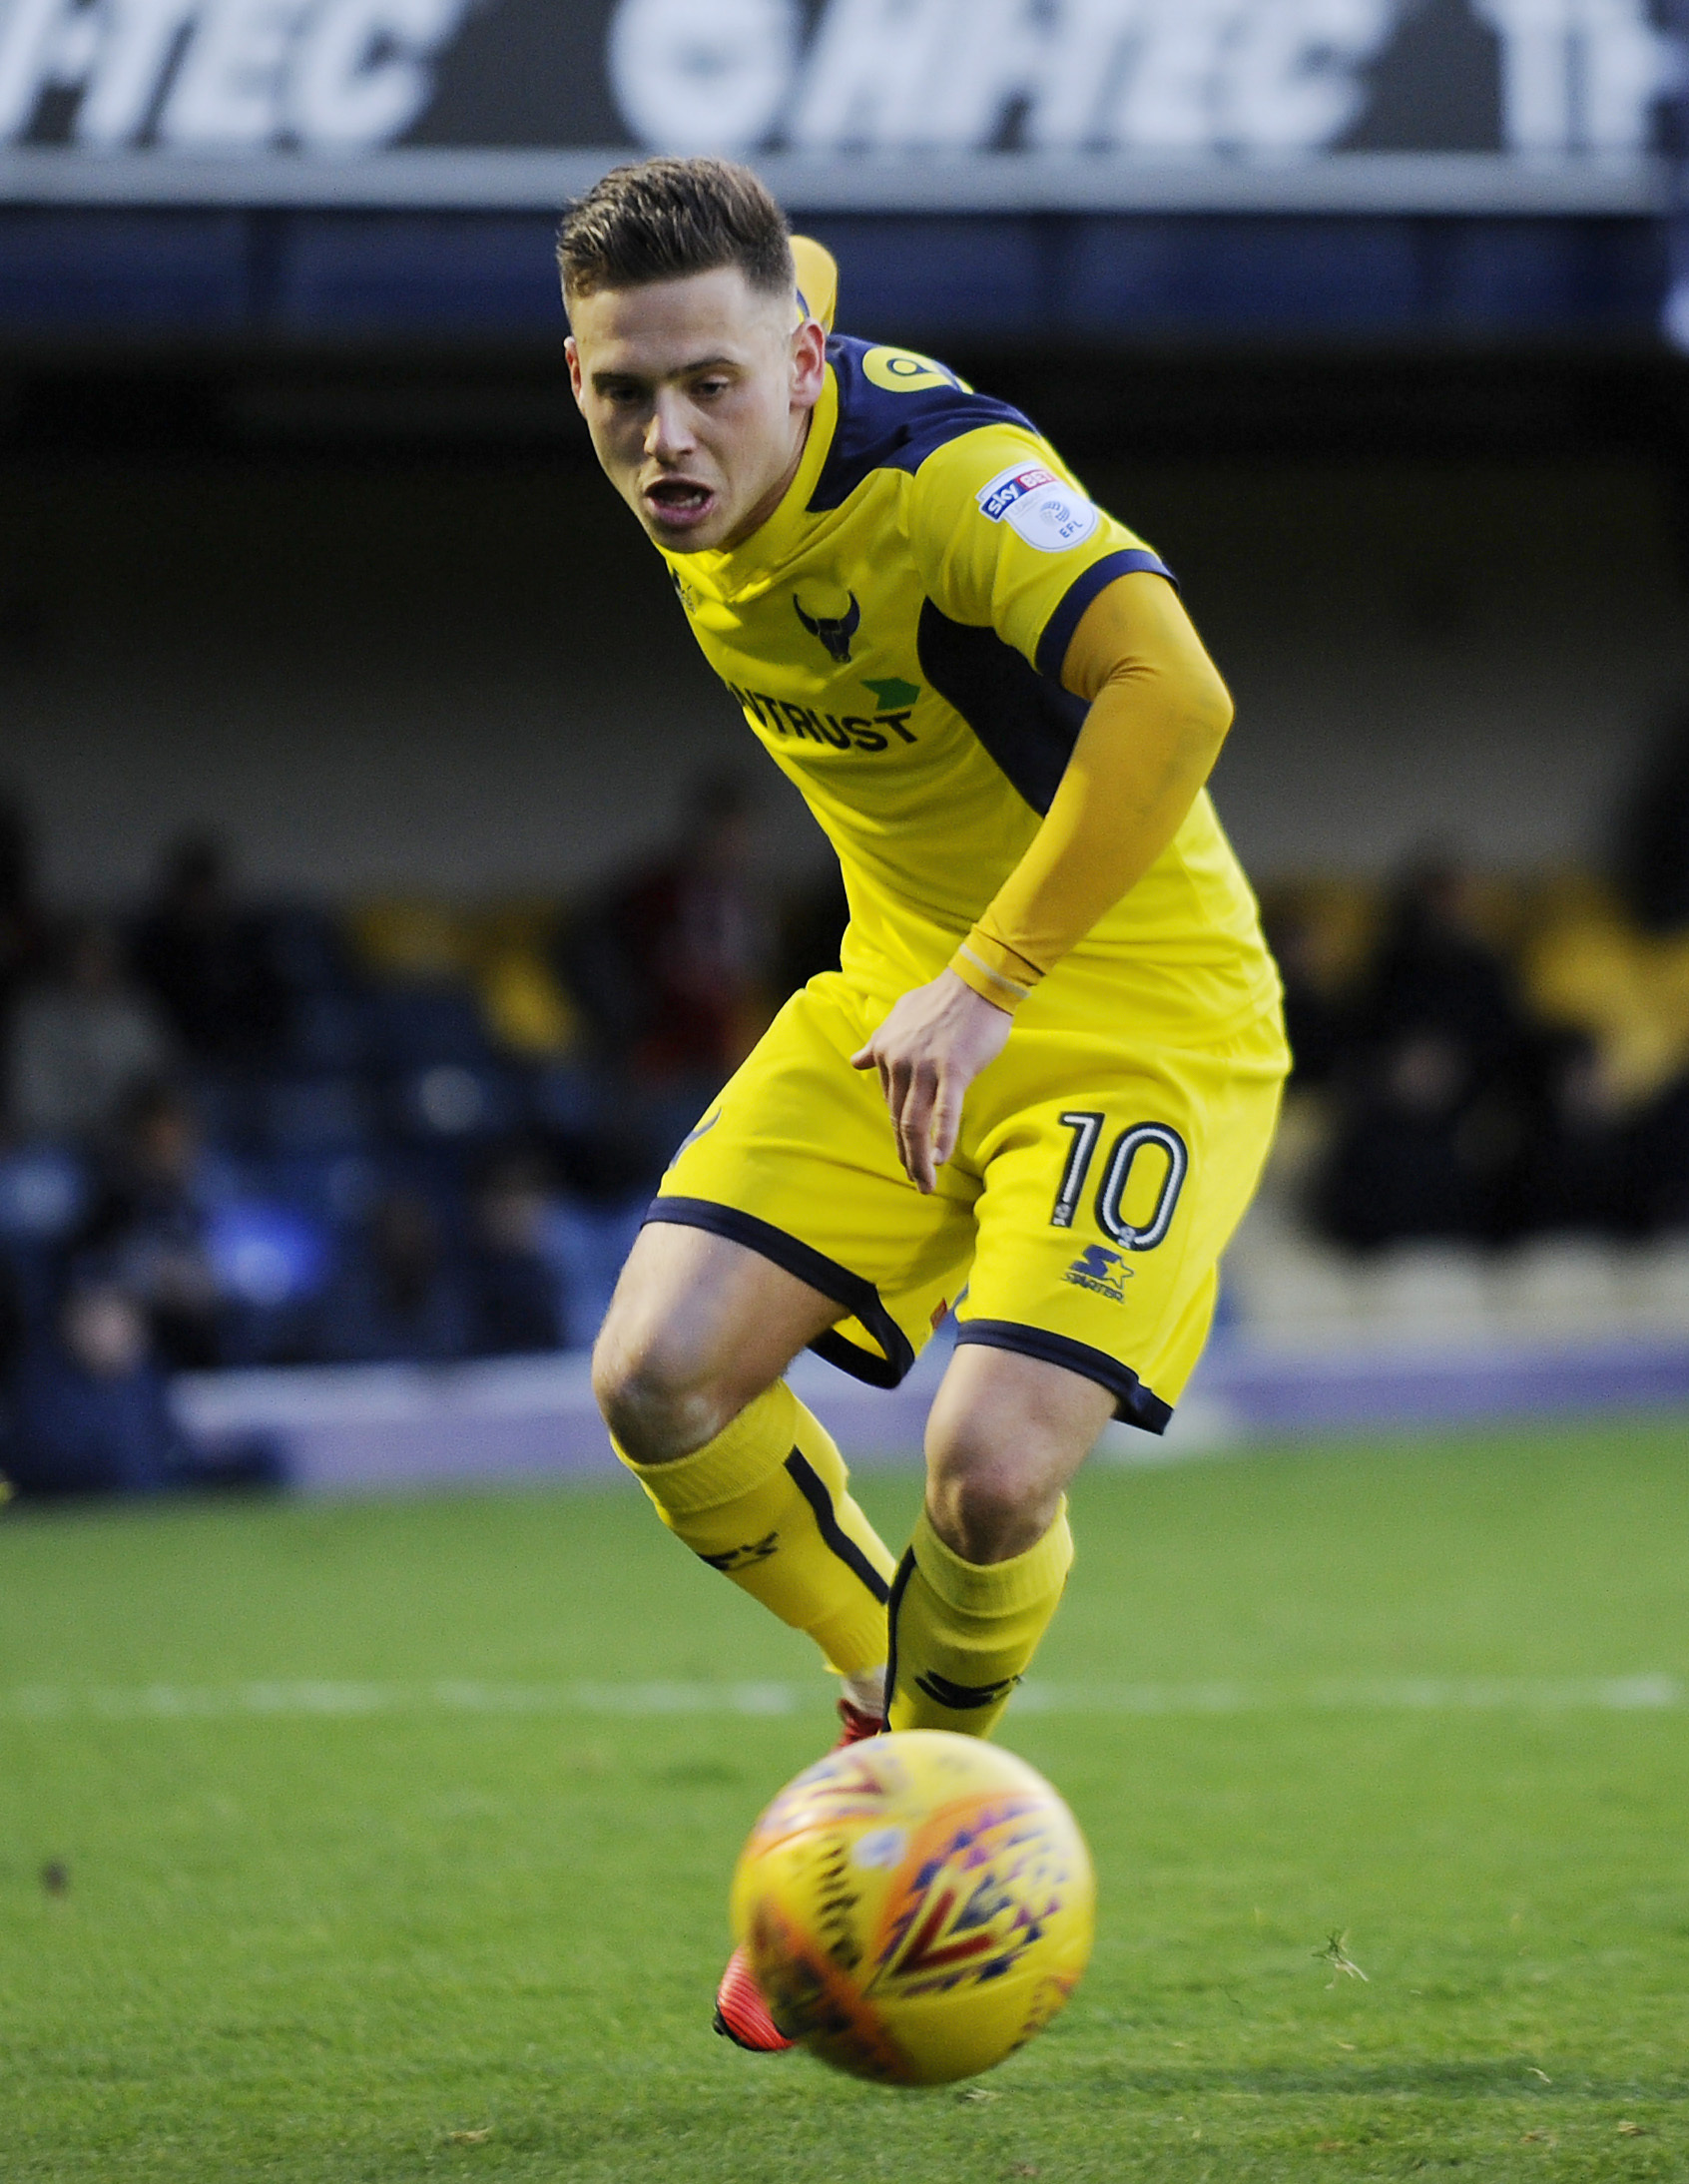 Southend Utd  V Oxford Utd. .Jack Payne for Oxford..Picture by: David Fleming..Picture by: David Fleming.